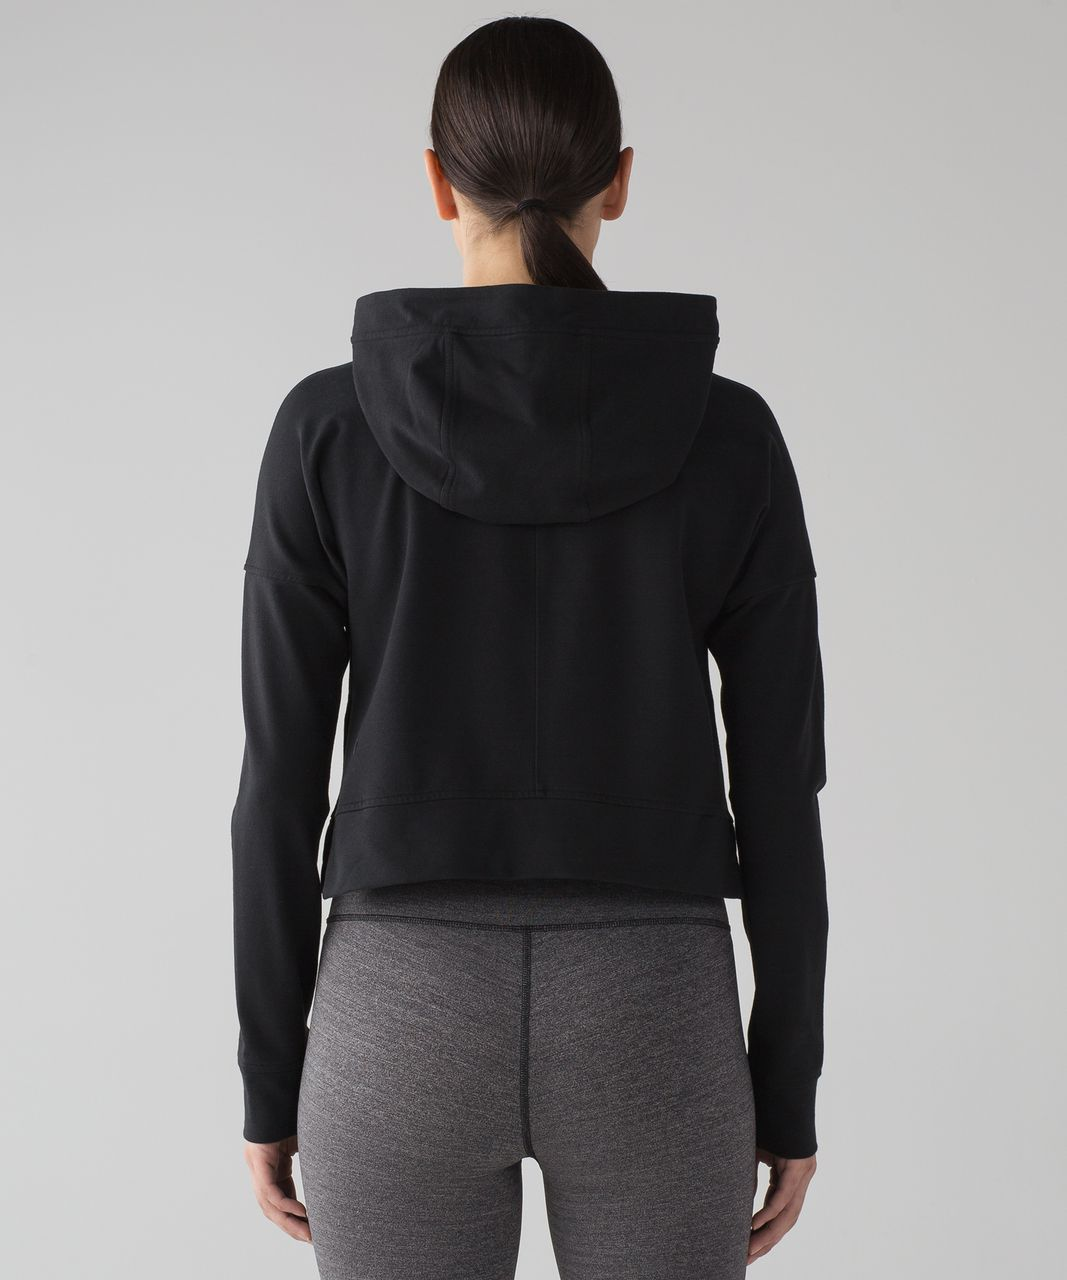 Pullover Hoodie Cut Lululemon Cut Above Pullover Black